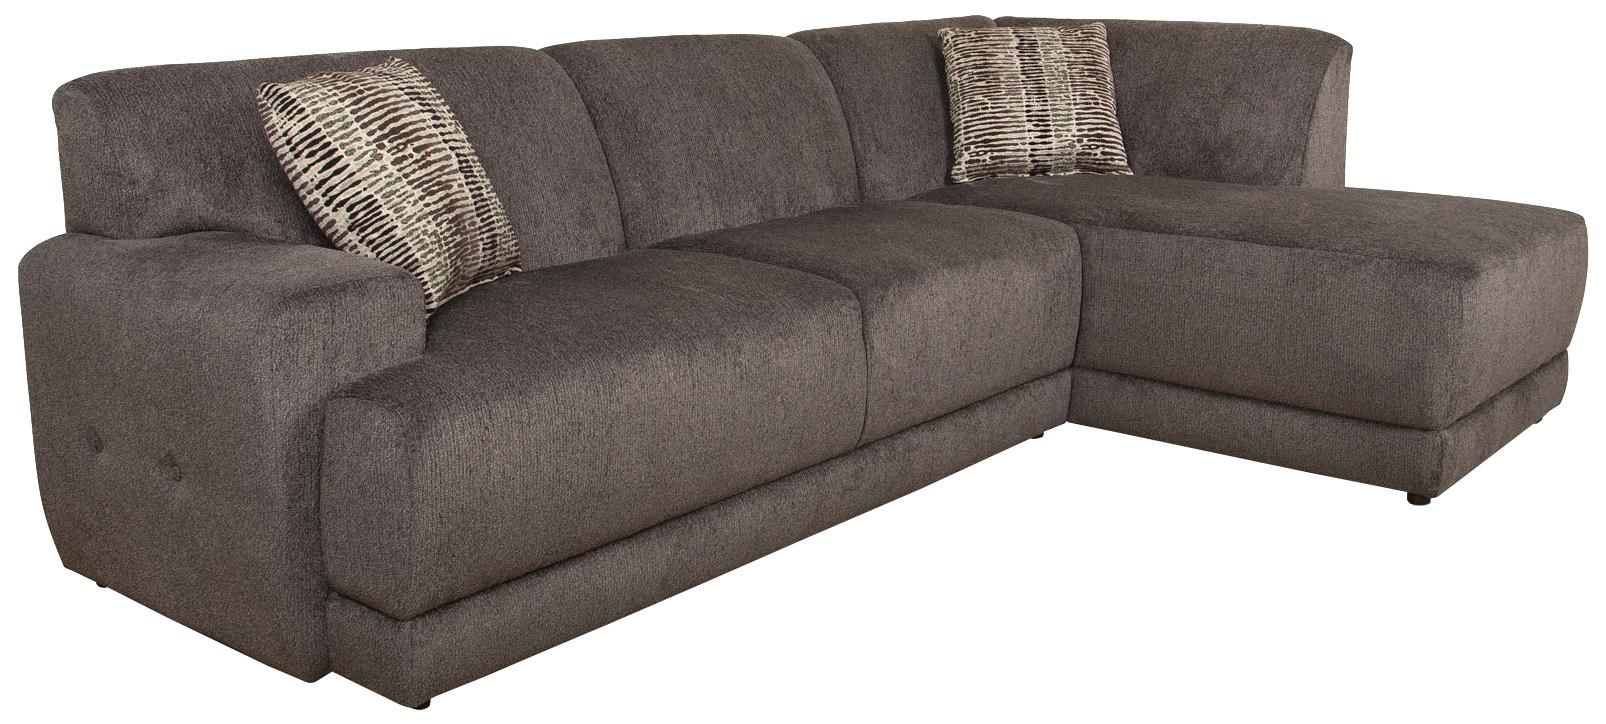 Sofa Foam Meaning Cole Contemporary Sectional Sofa With Right Facing Chaise By England At Dunk Bright Furniture